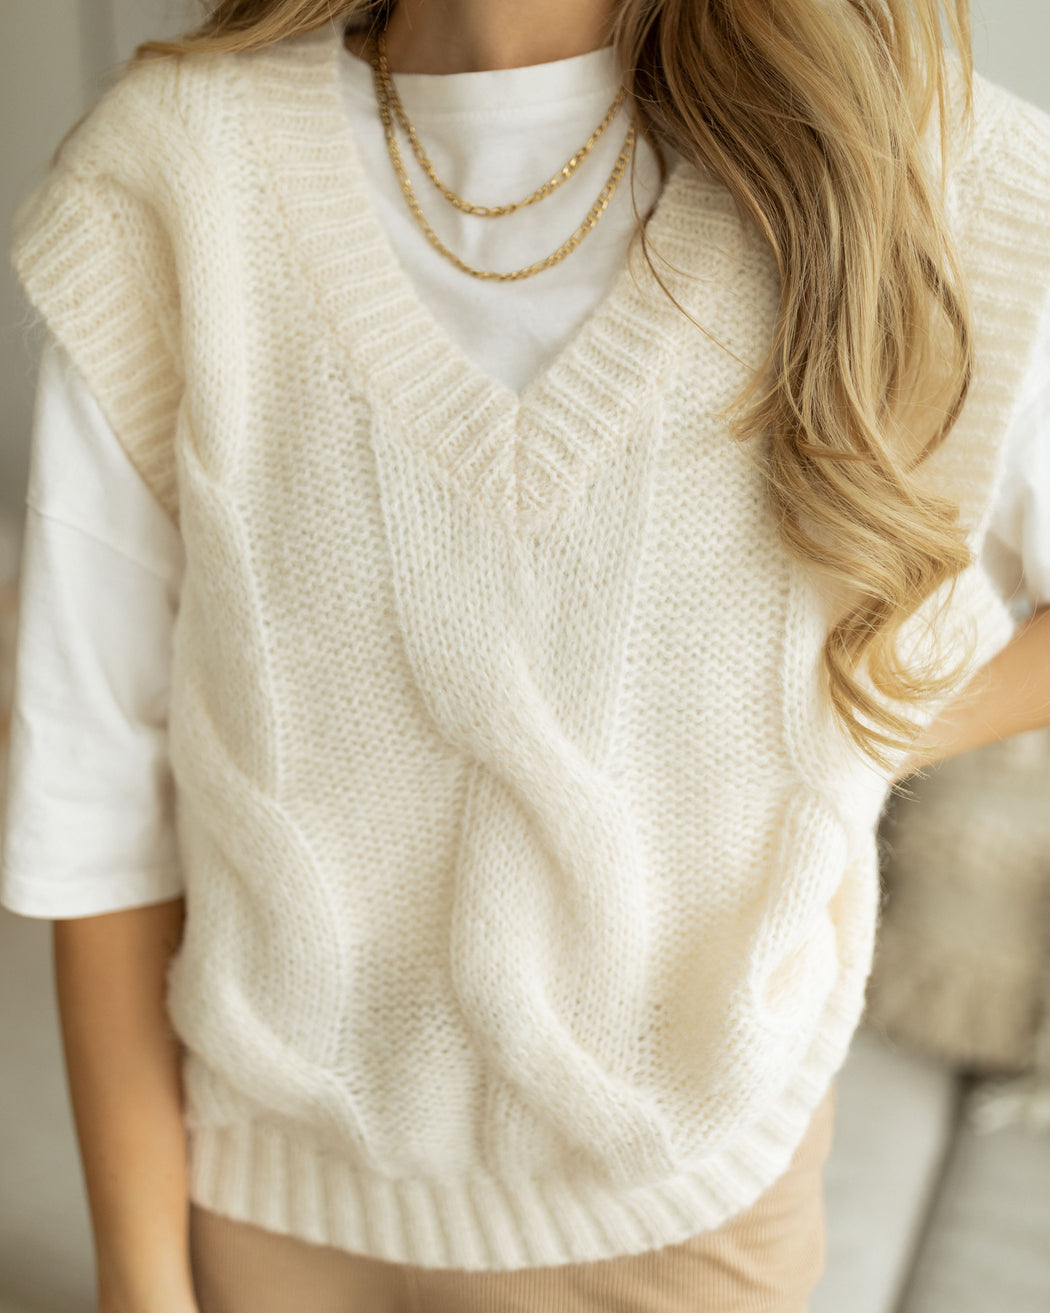 Pollunder Strick creme style fashion mode cardigan pullover